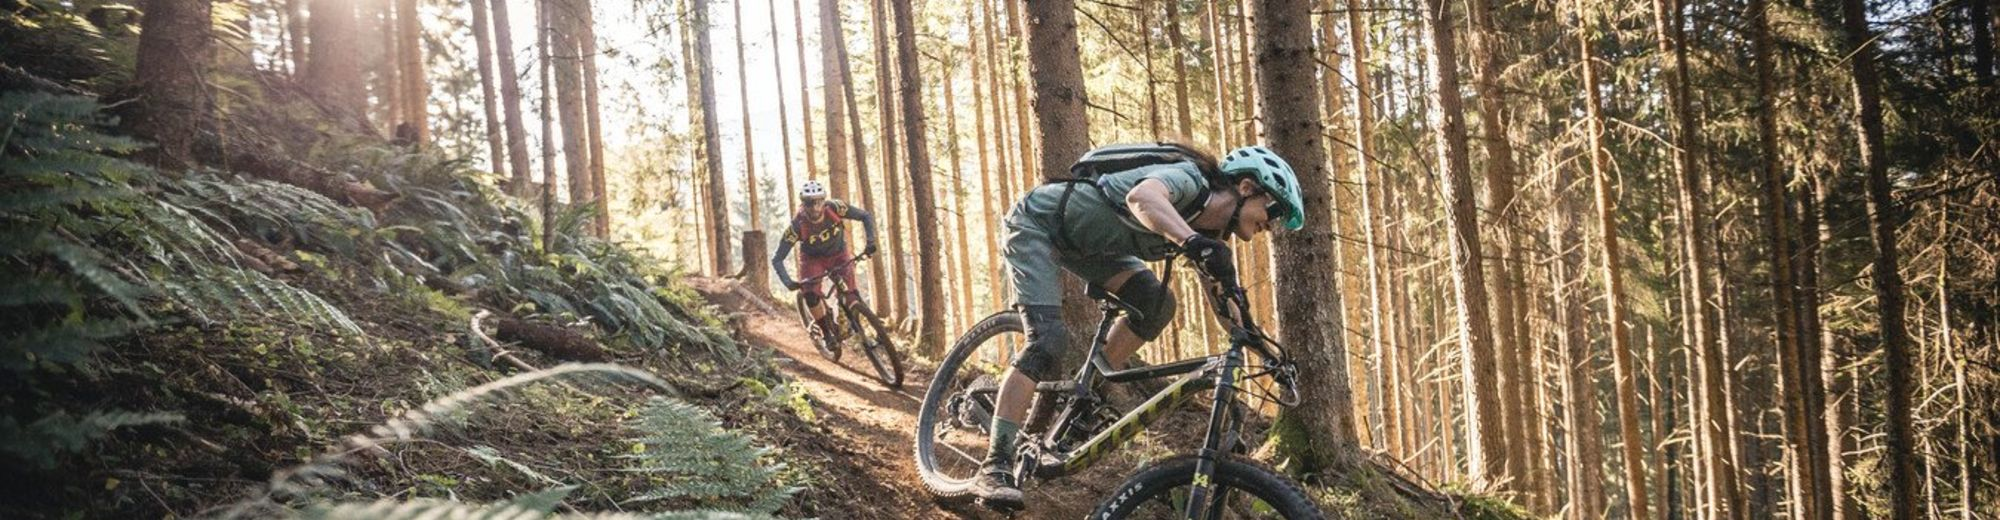 Trail in Leogang